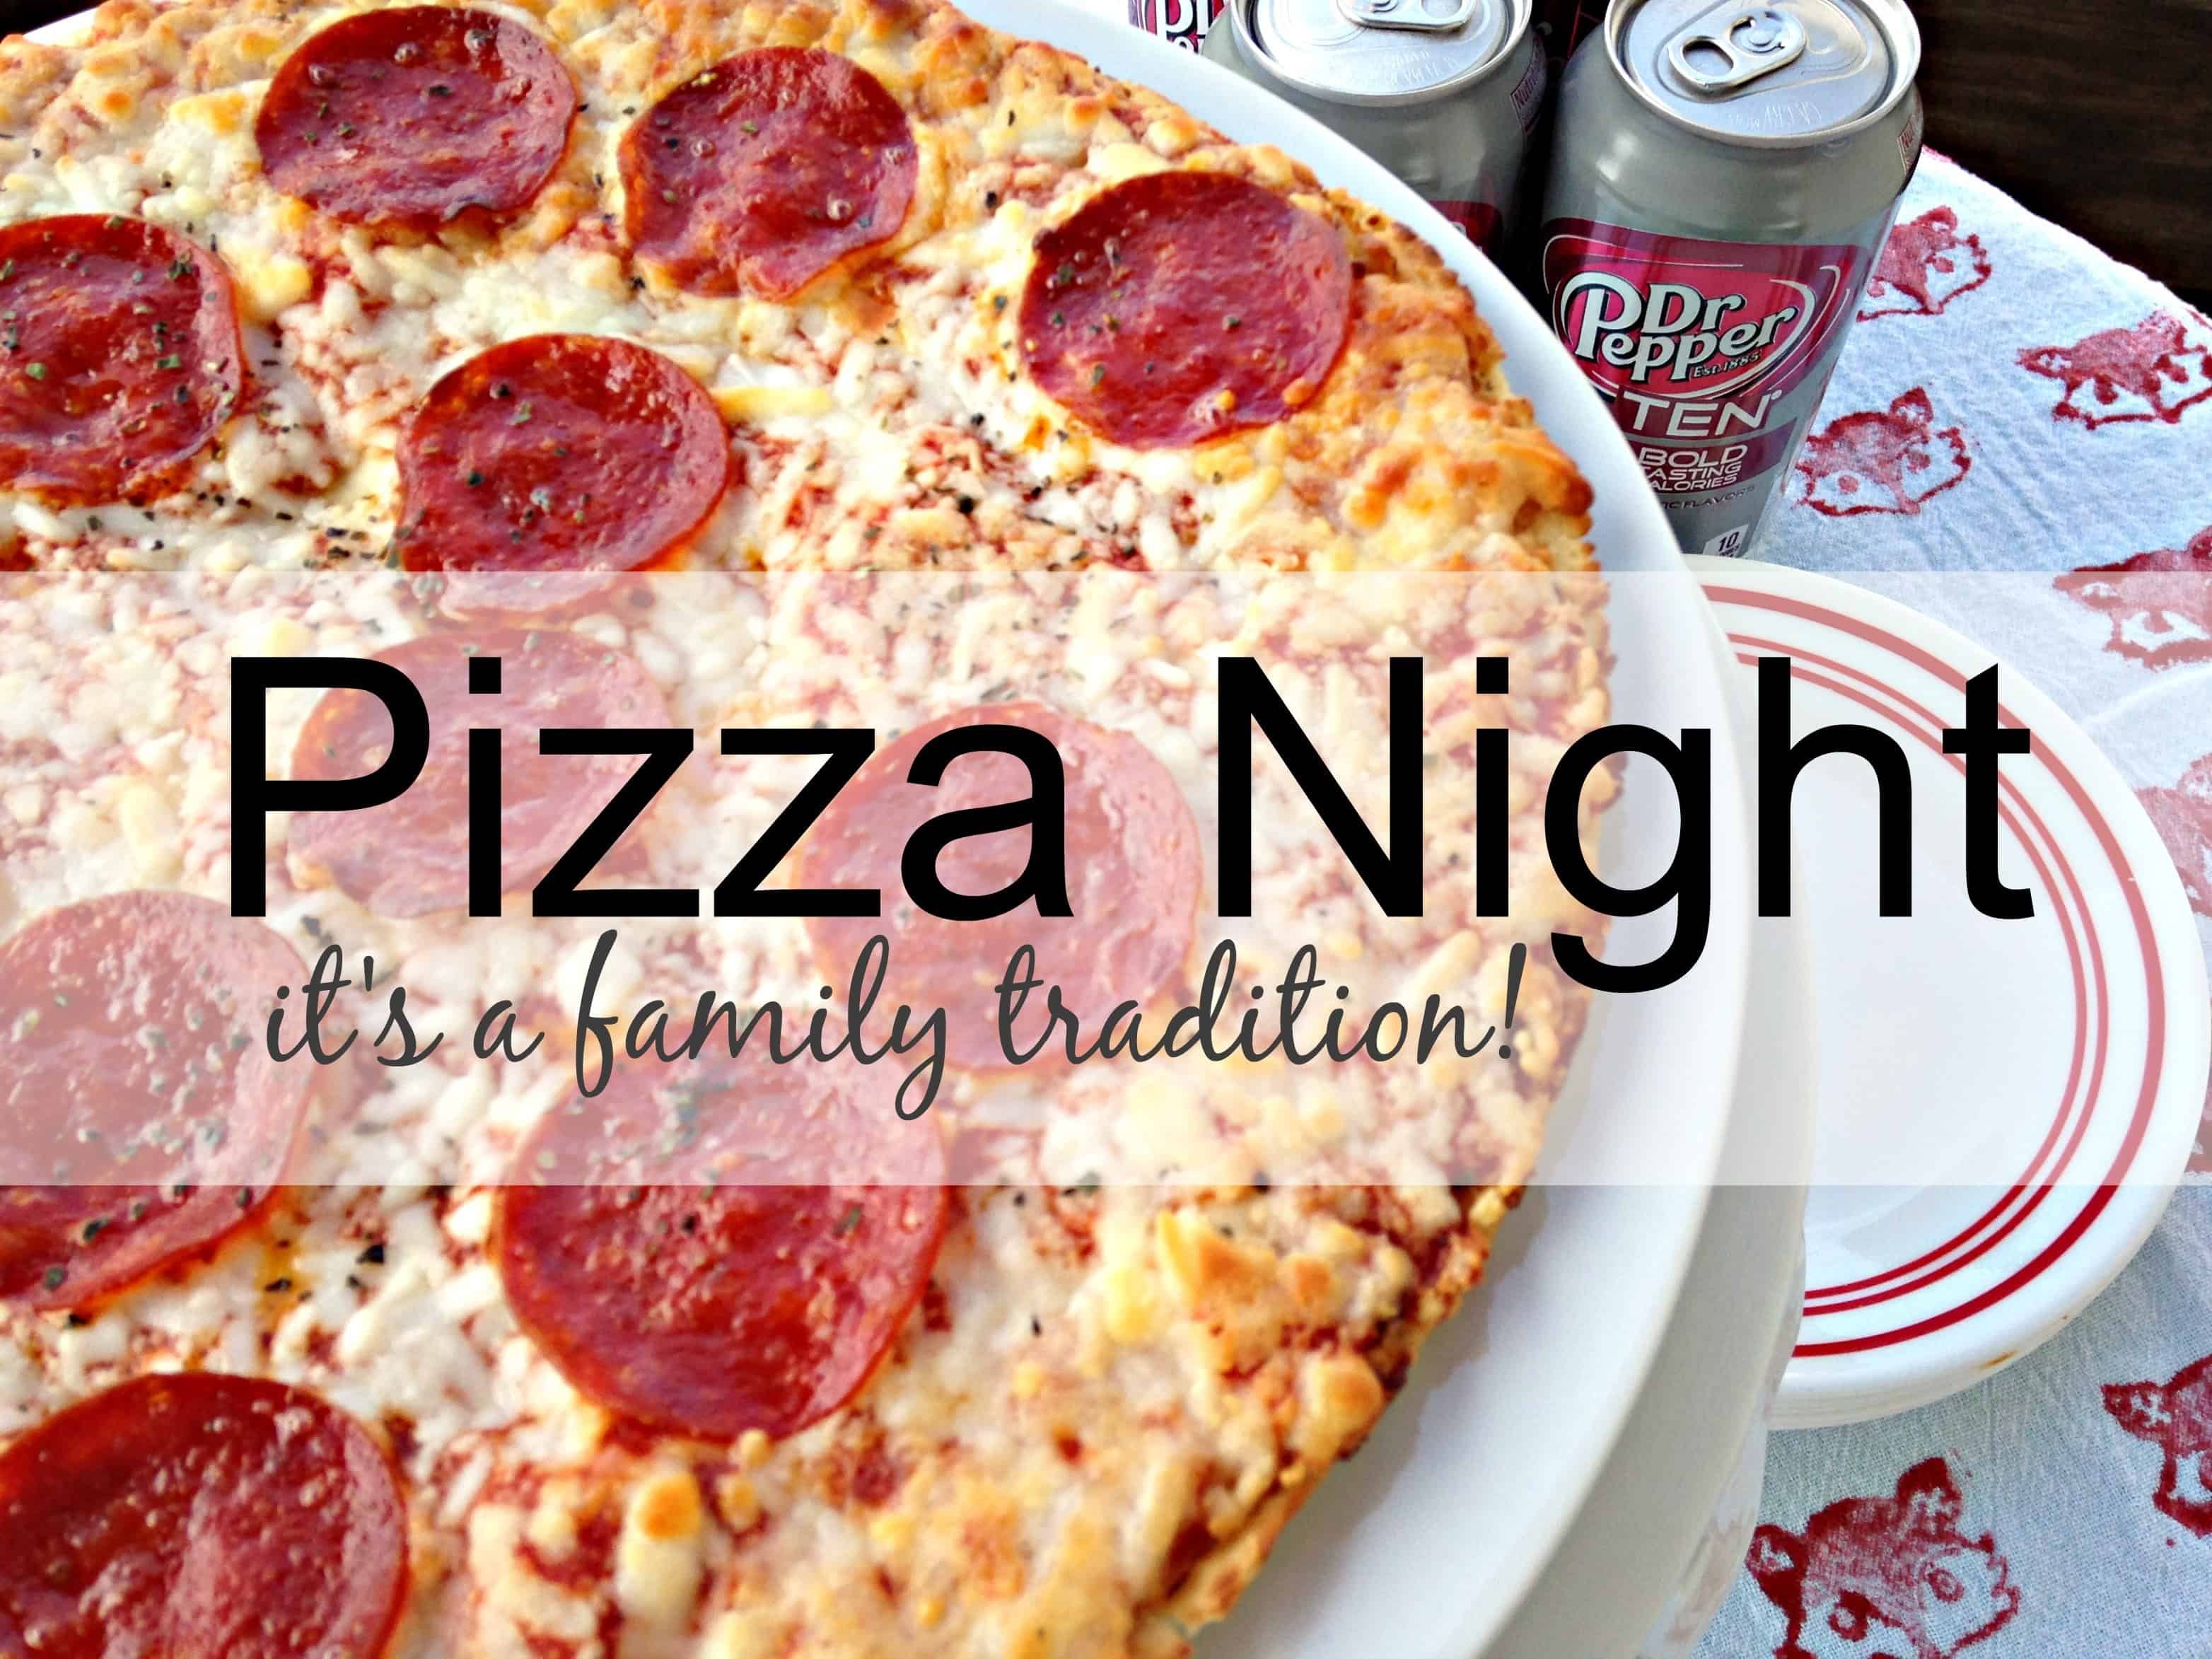 Pizza night with the family